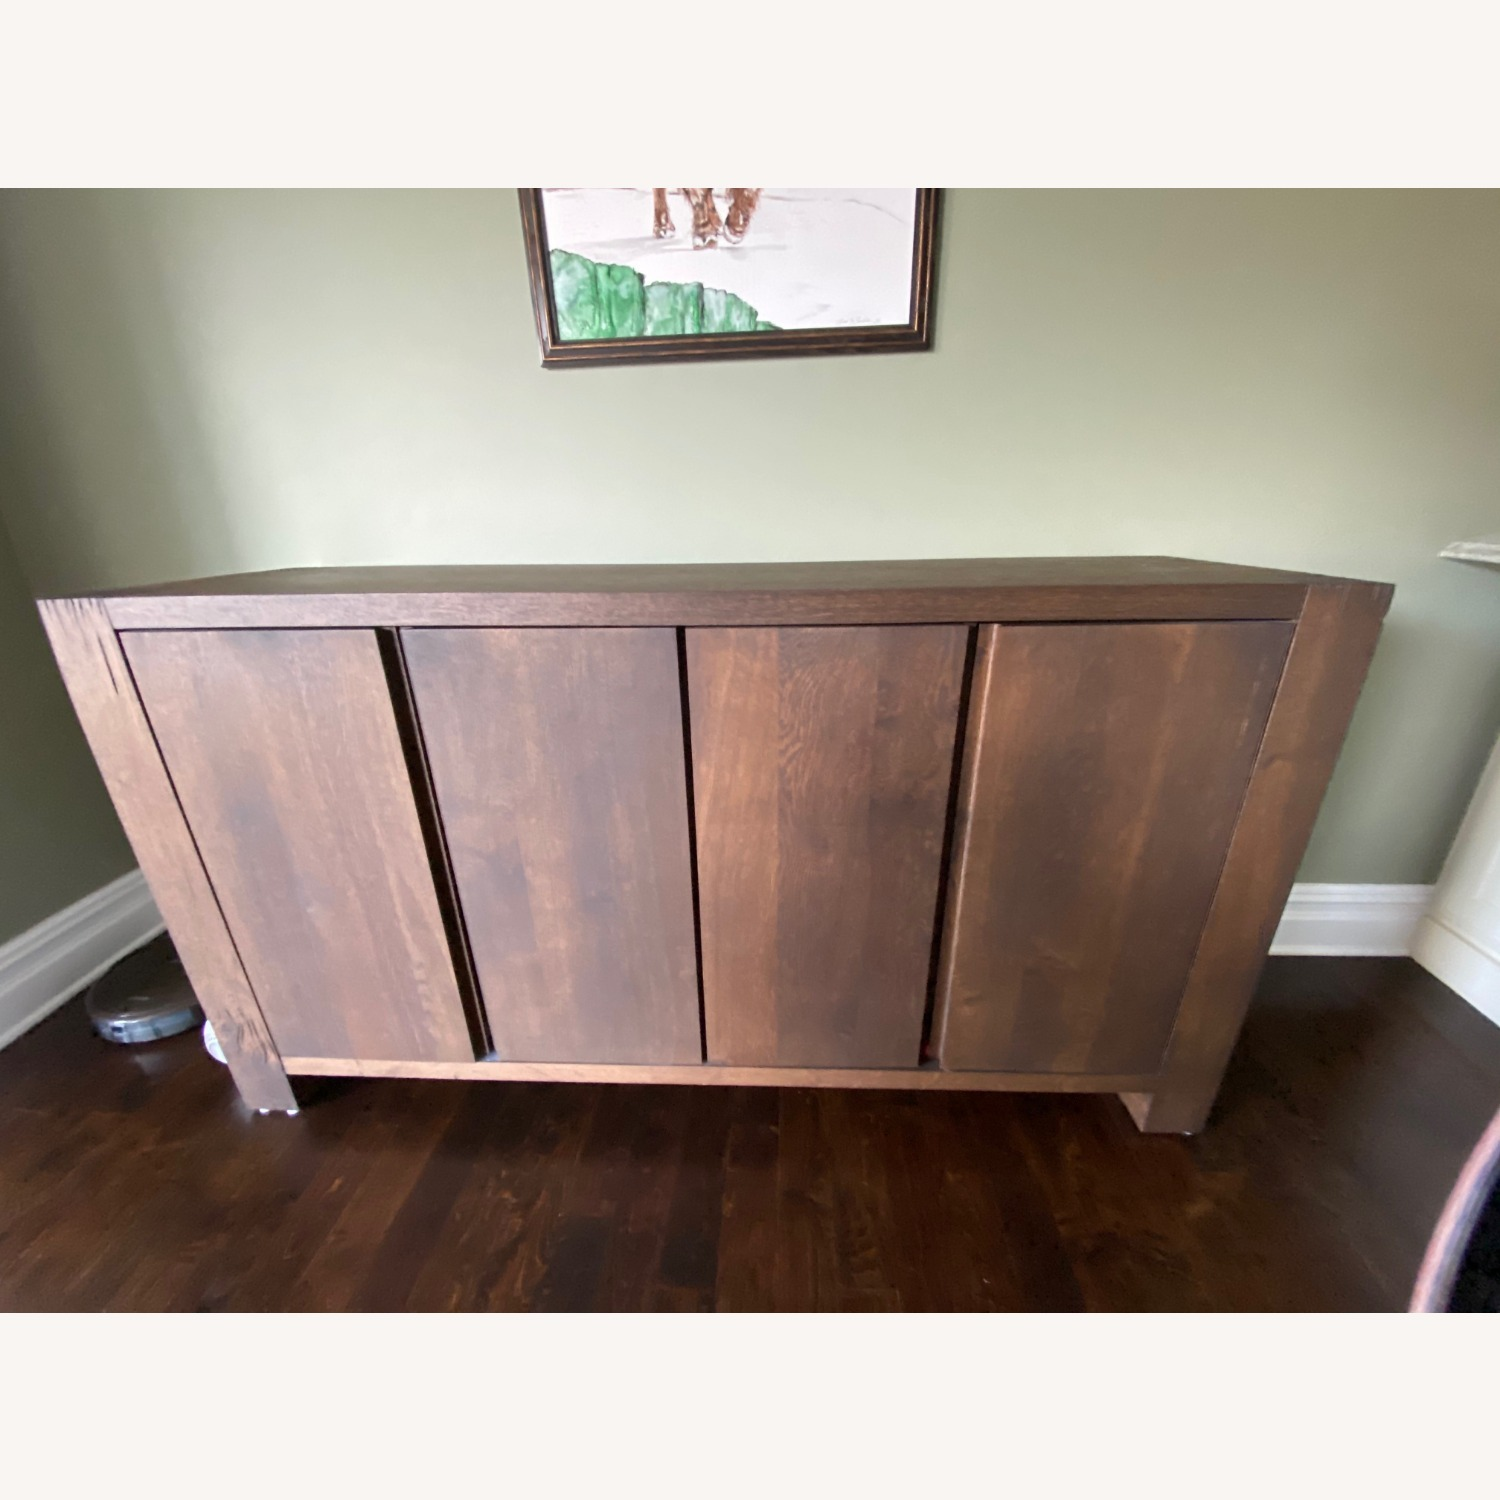 Crate and Barrel Charcoal Color Sideboard - image-1